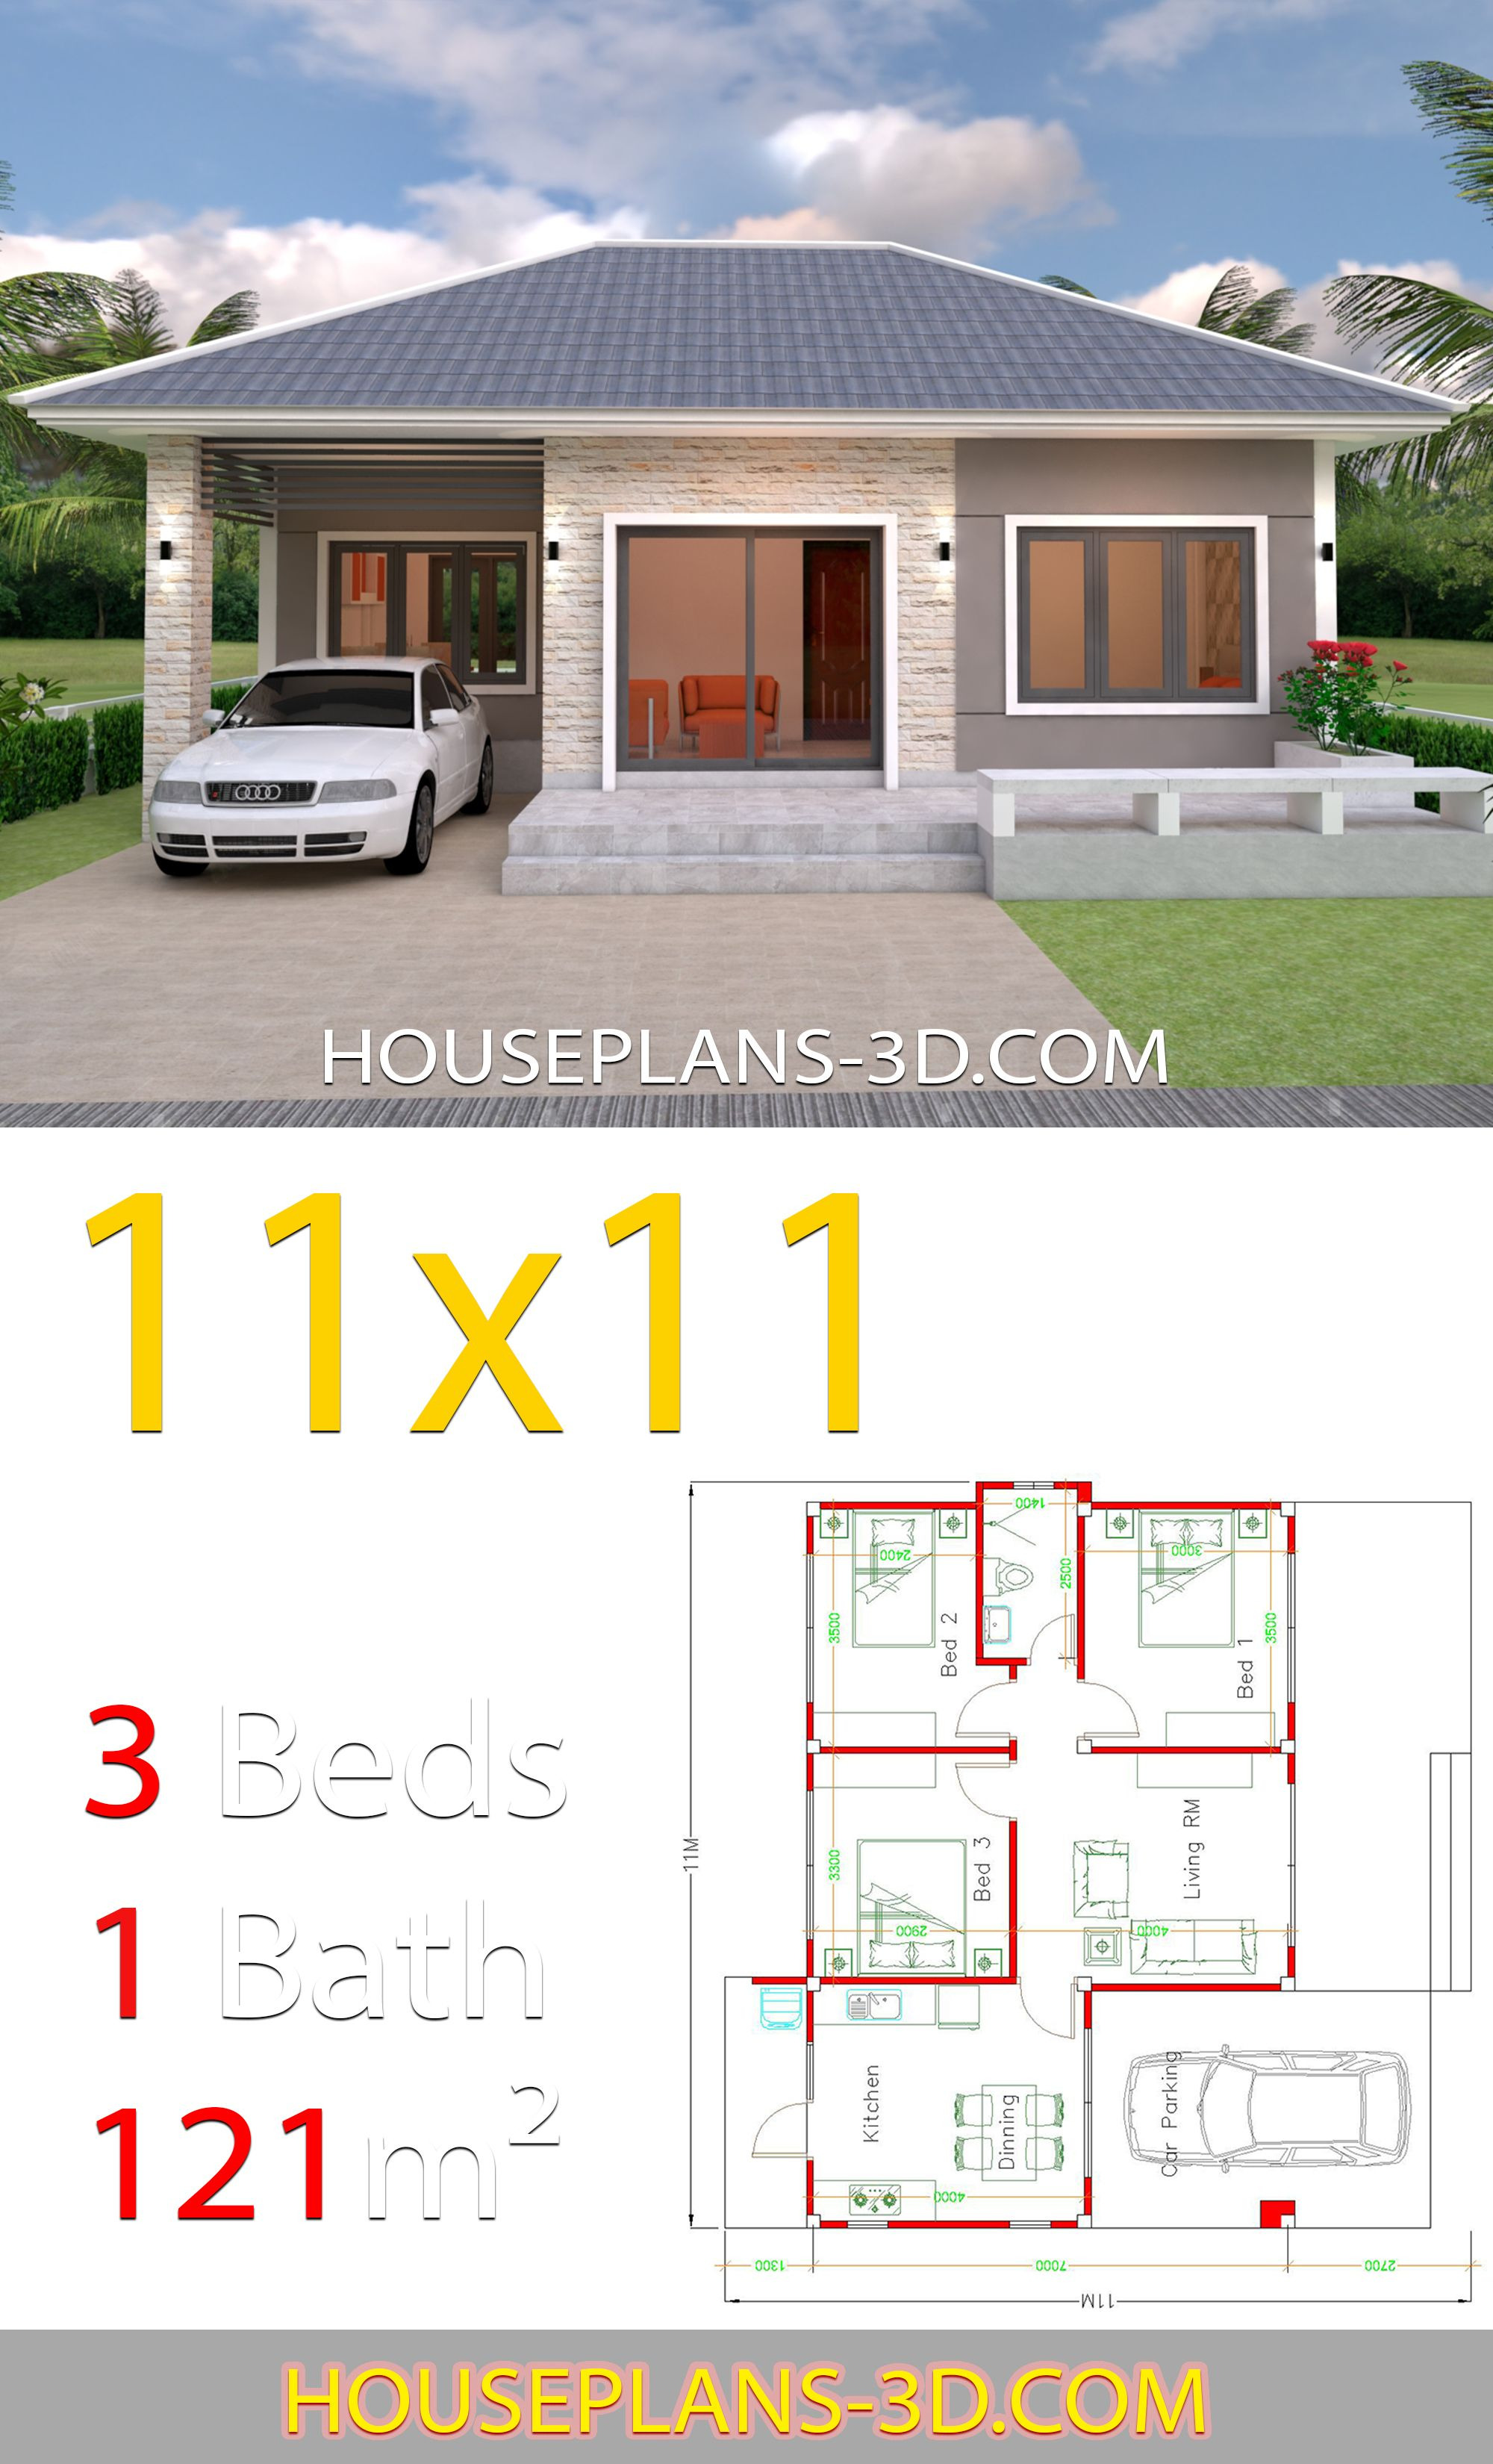 Roof Plans for House Inspirational House Design 11x11 with 3 Bedrooms Hip Roof